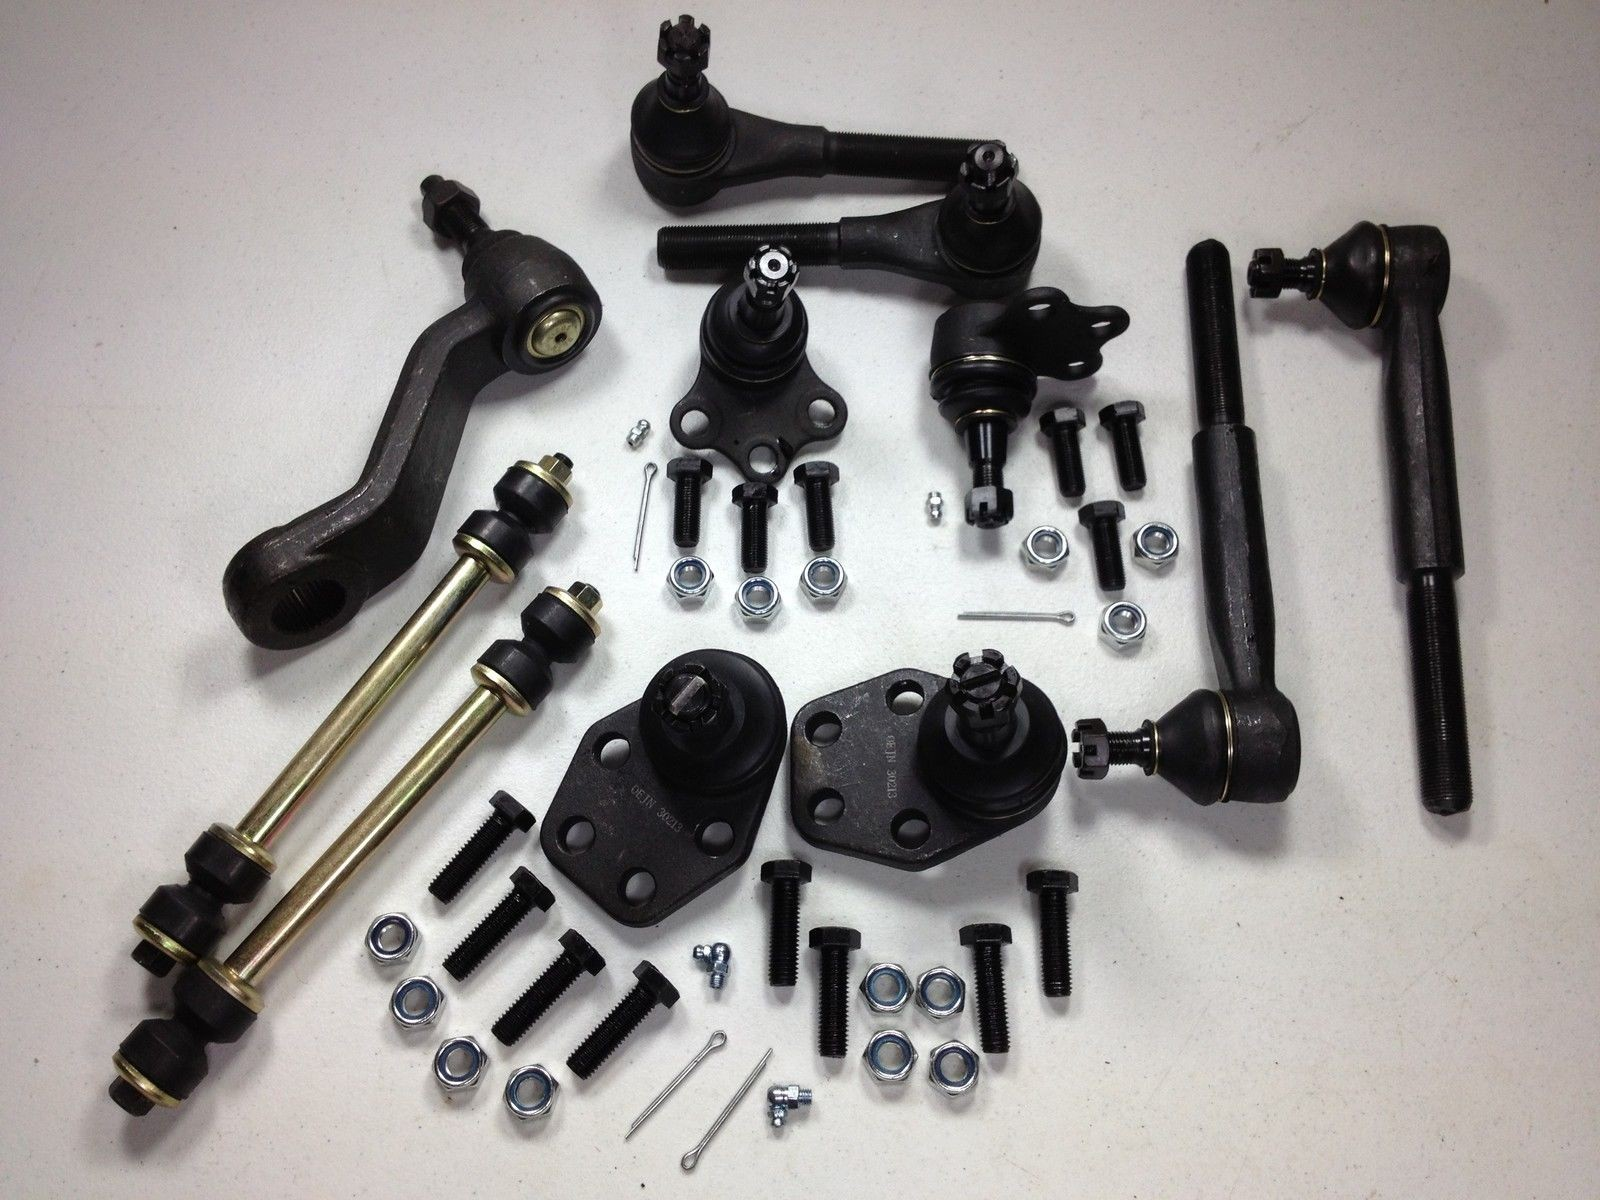 11 Piece Suspension Kit For 2000 2001 Dodge Ram 1500